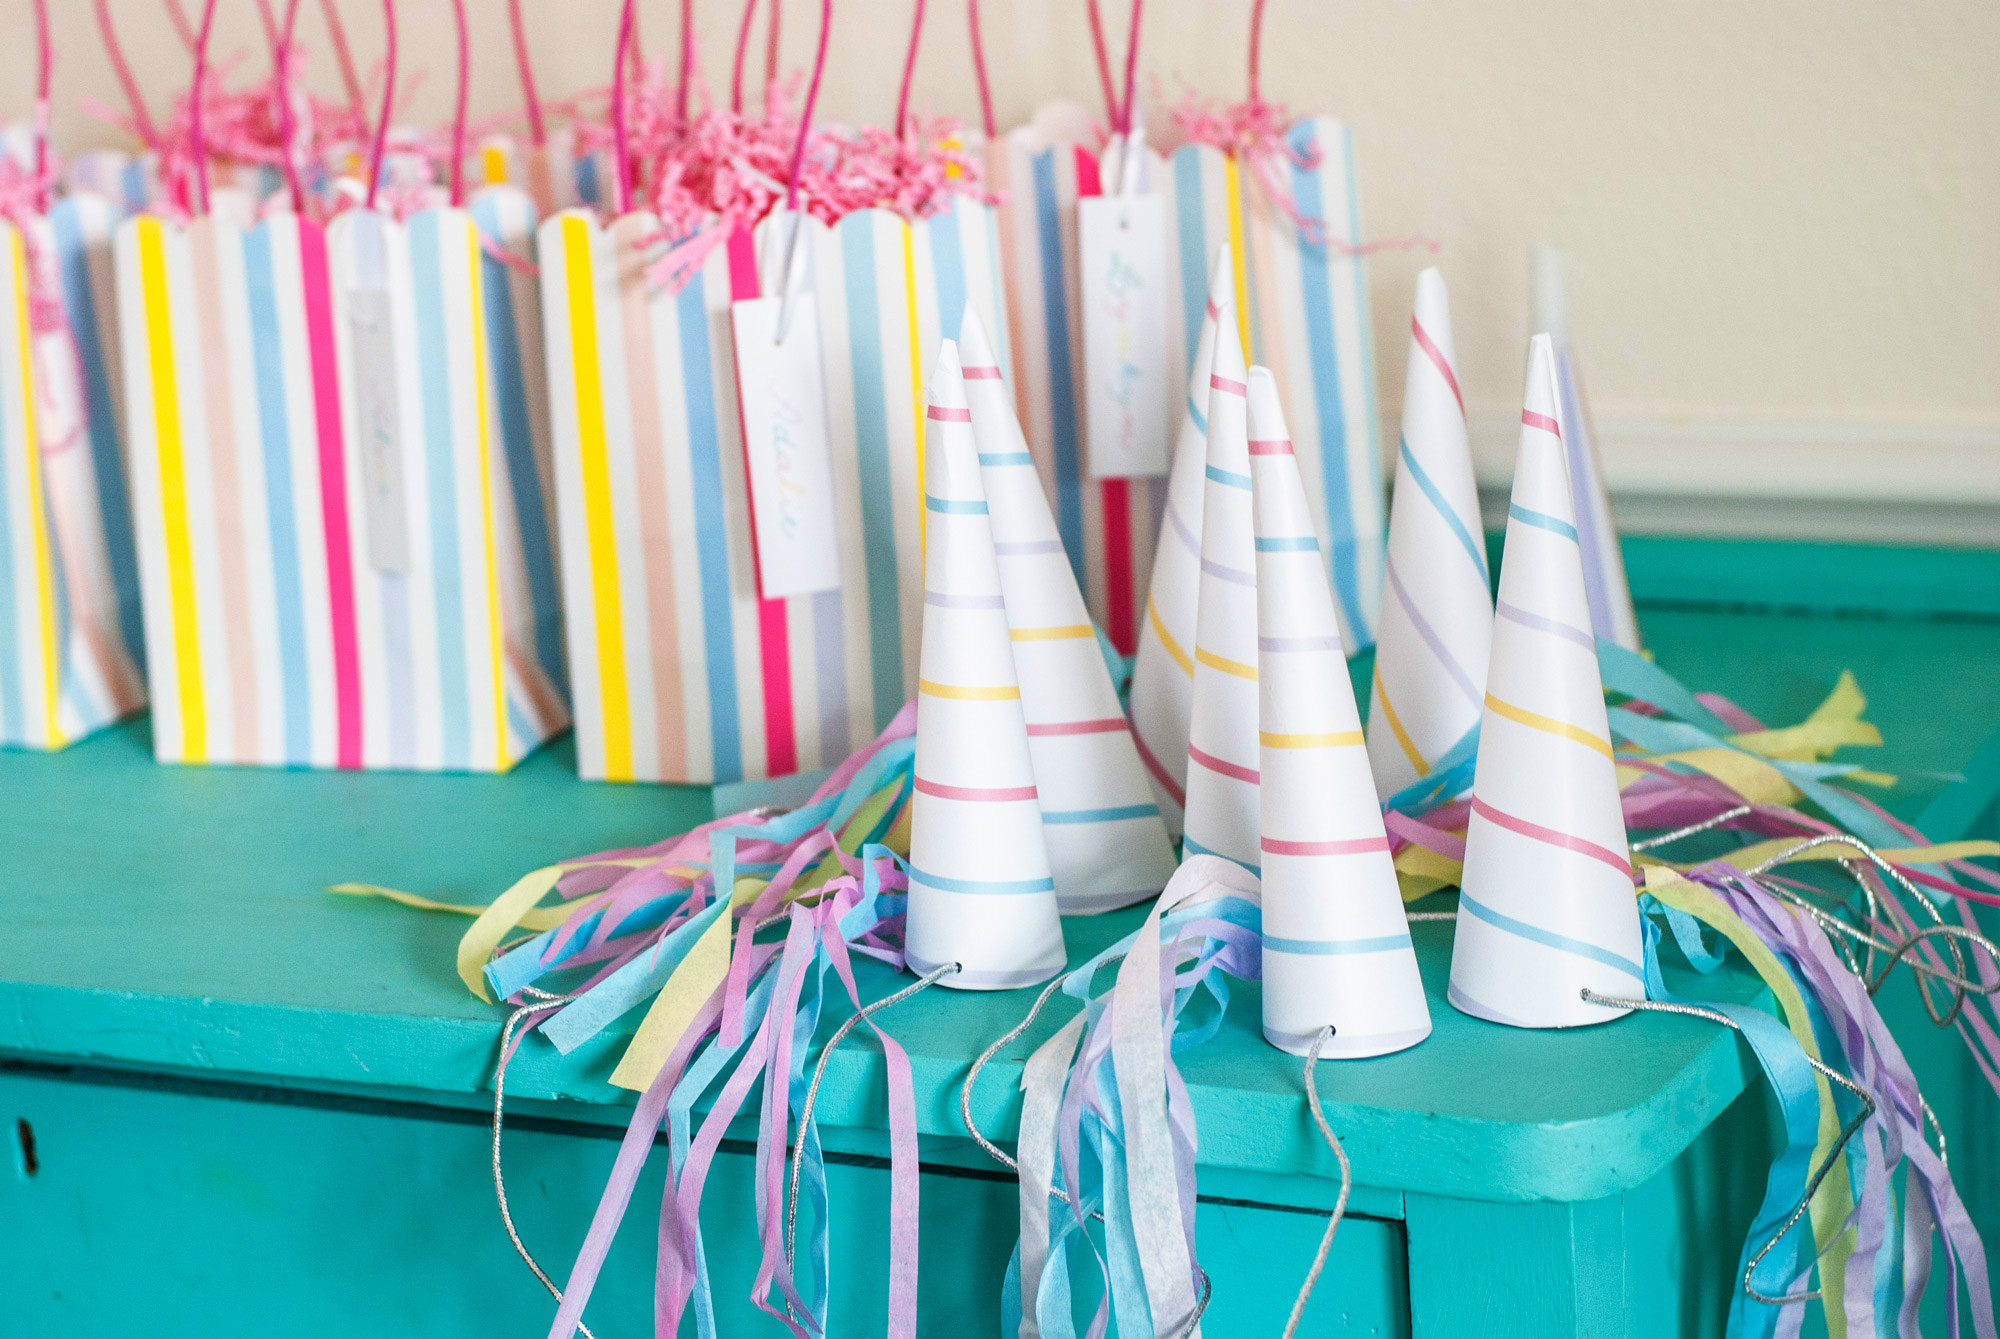 Unicorn horns and favor bags from Magical Unicorn Party | Black Twine | Itsy Belle Studio